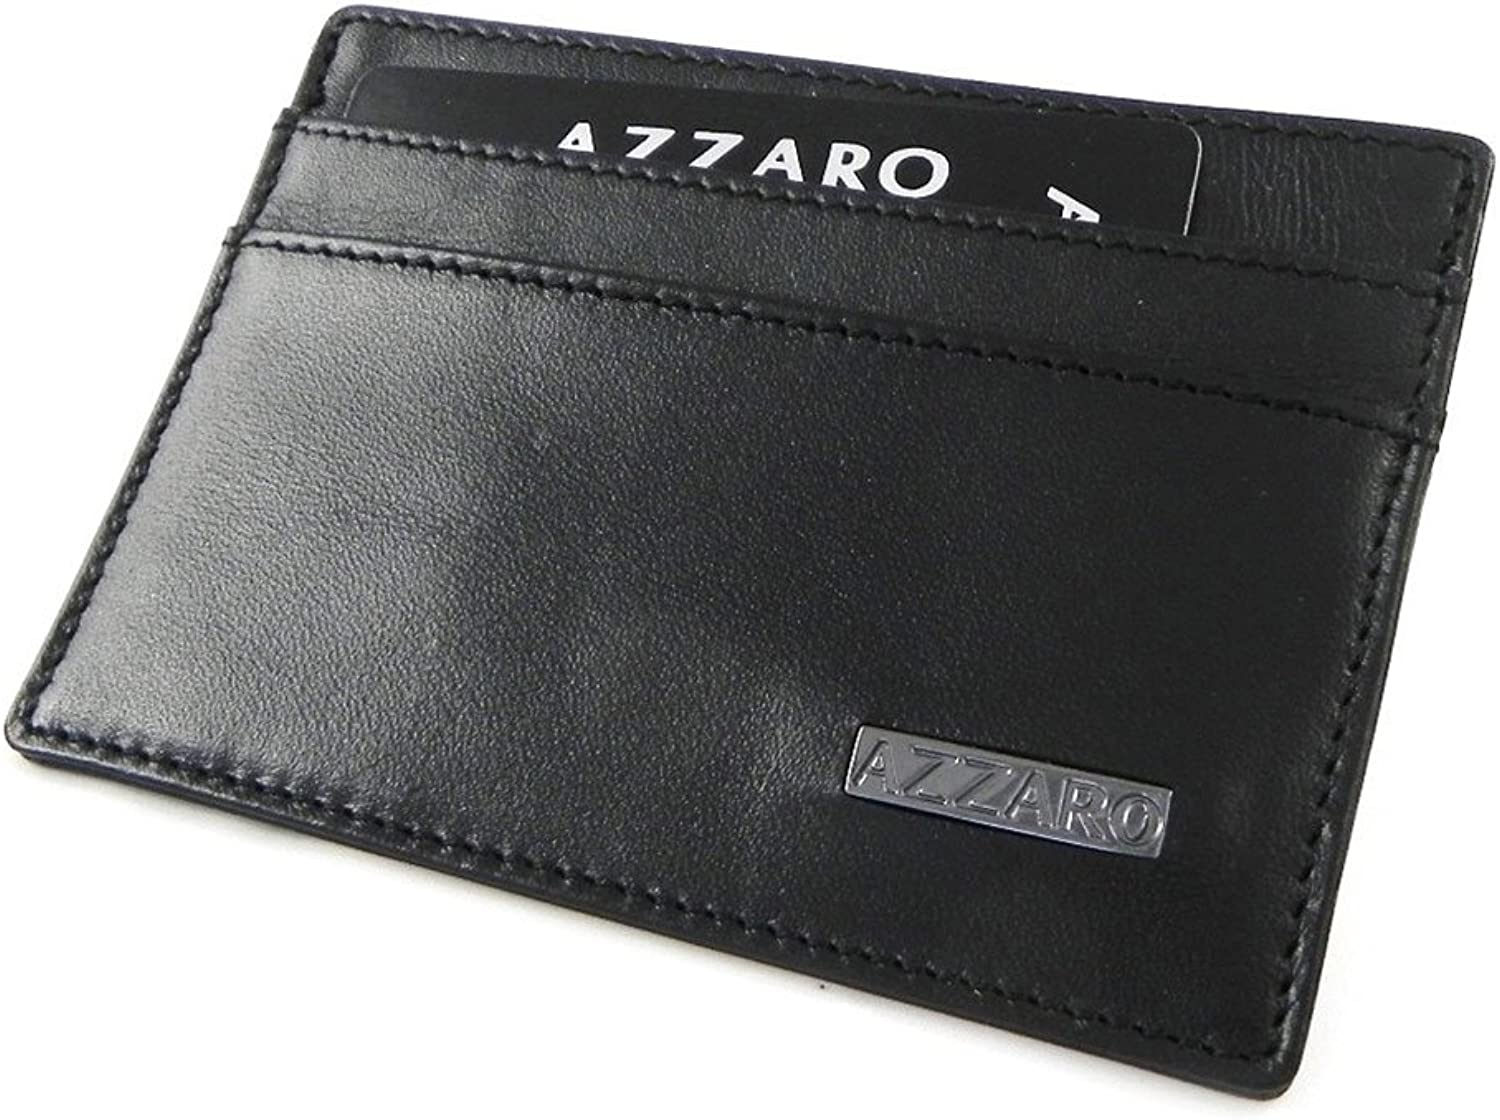 Azzaro [H9716]  Card holder 'Azzaro' black (slim).